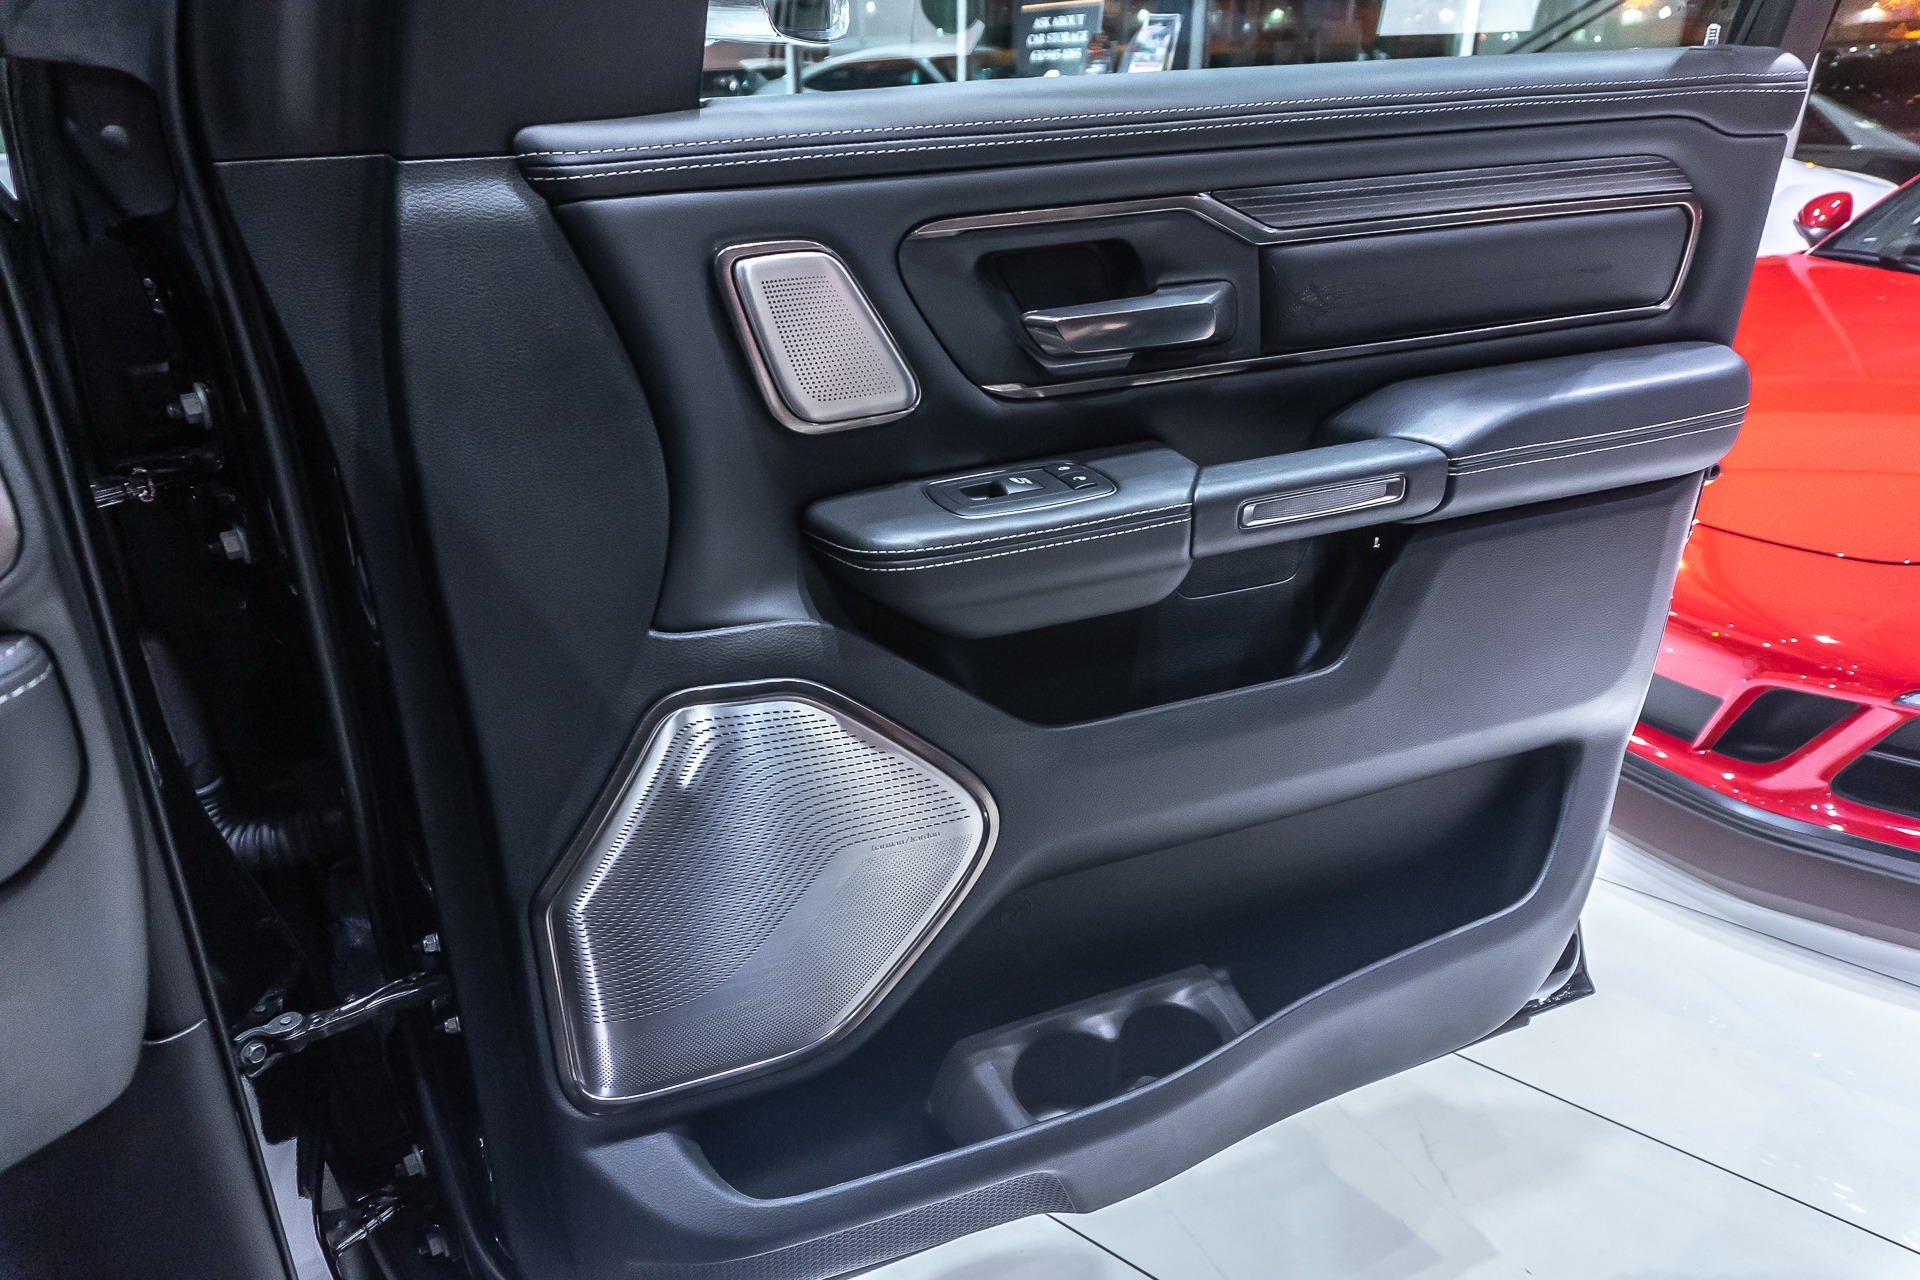 Used 2019 Dodge Ram 1500 Limited Crew Cab 4X4 Pickup